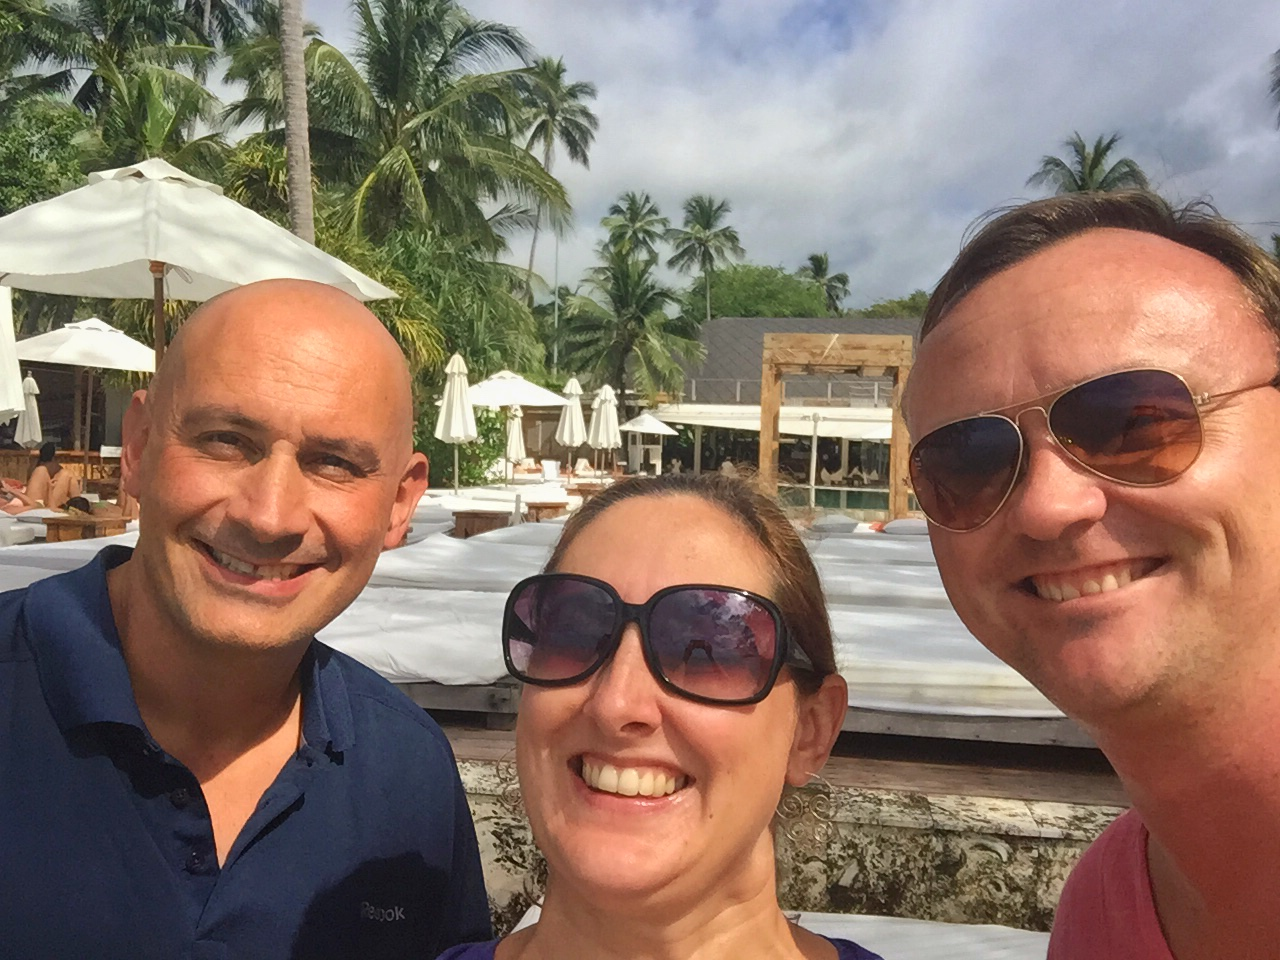 Ep 006: Luxury Travel, Twitter and Thai Food With Scott Eddy